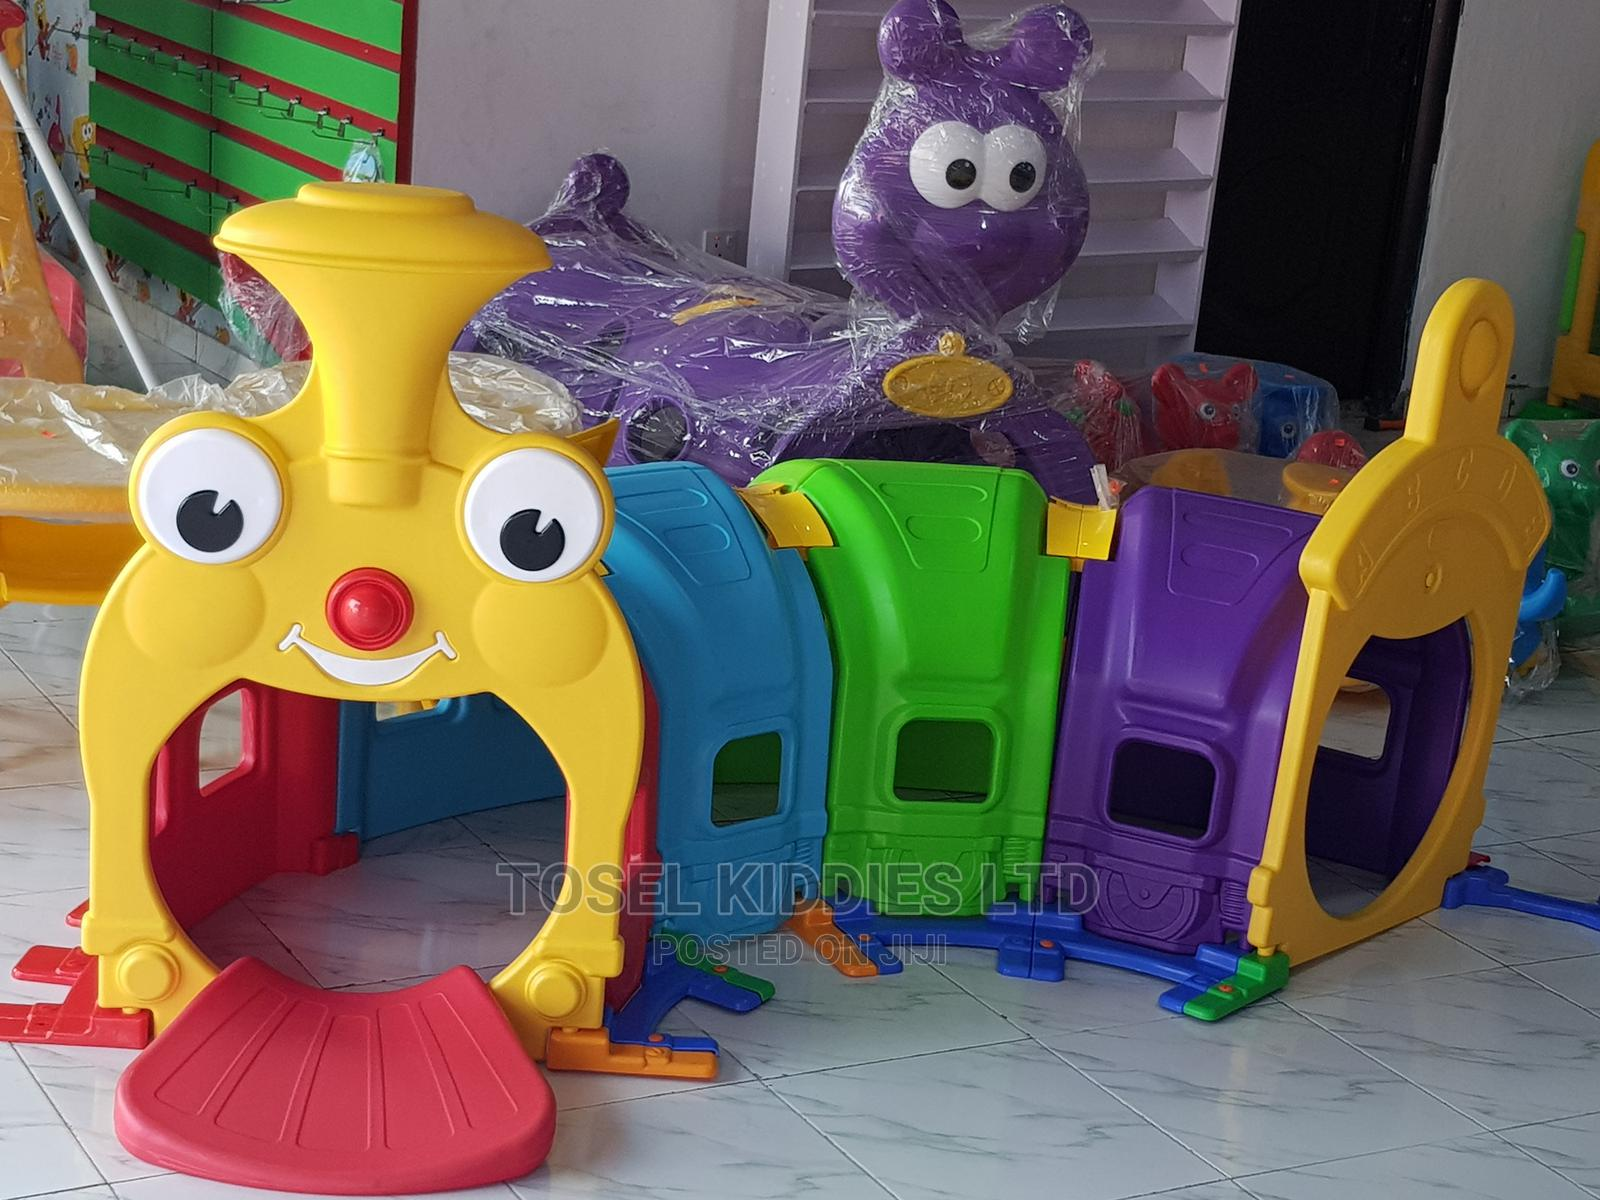 Archive: Happy Train Tunnel Playground Toy for Kids